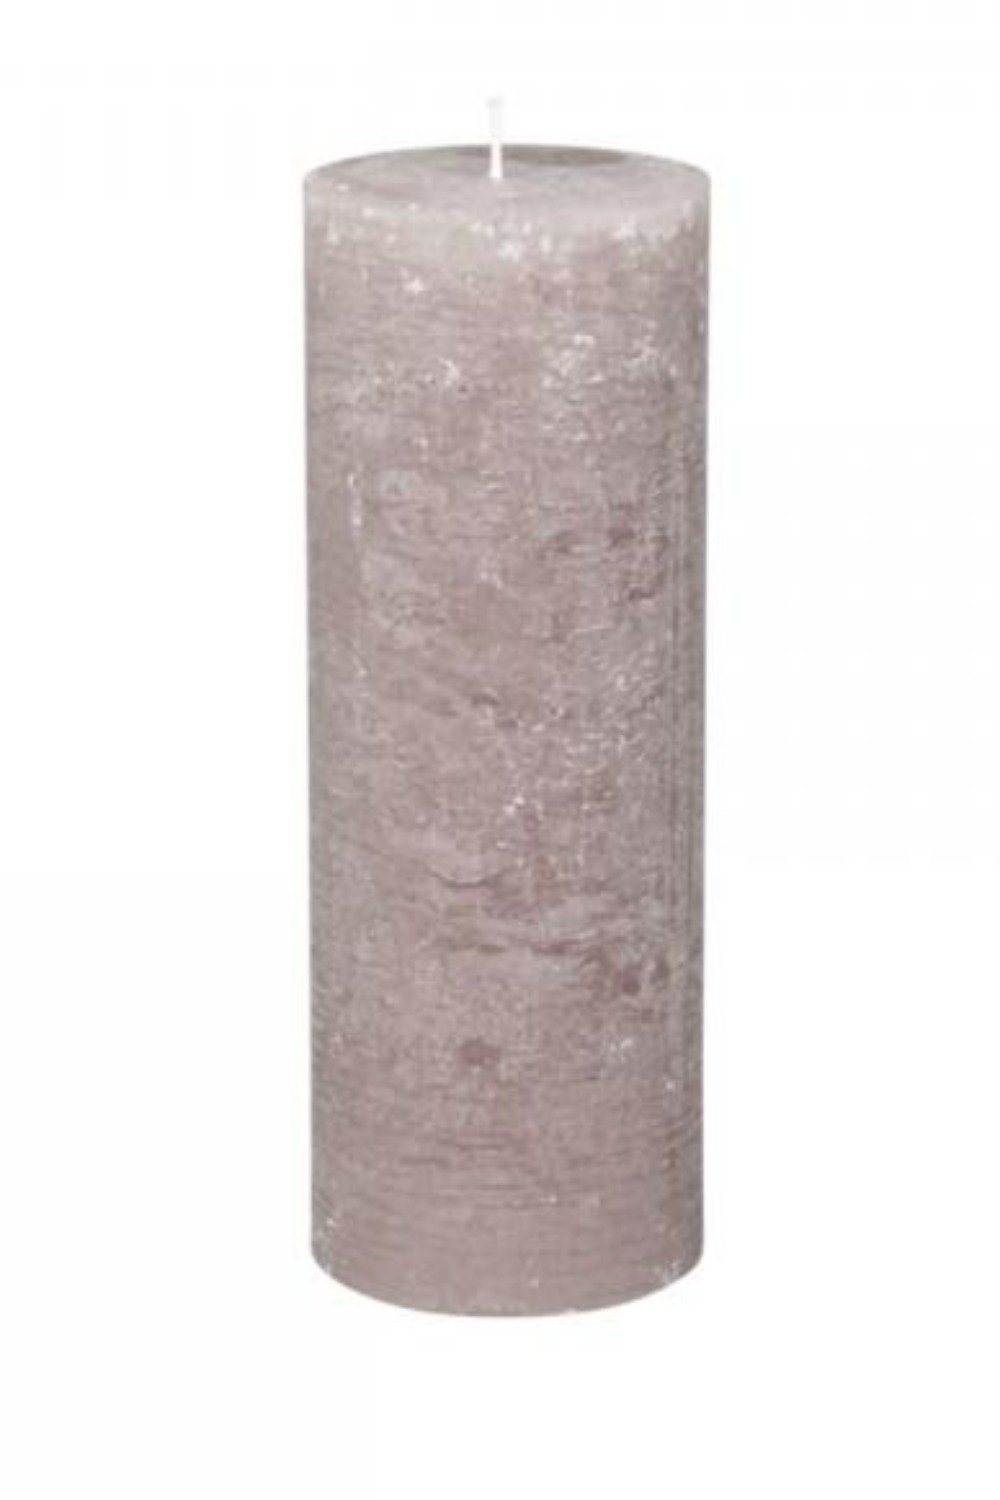 Rustic Pillar Candle - Taupe Candles & Fragrance Blume 25x10cm